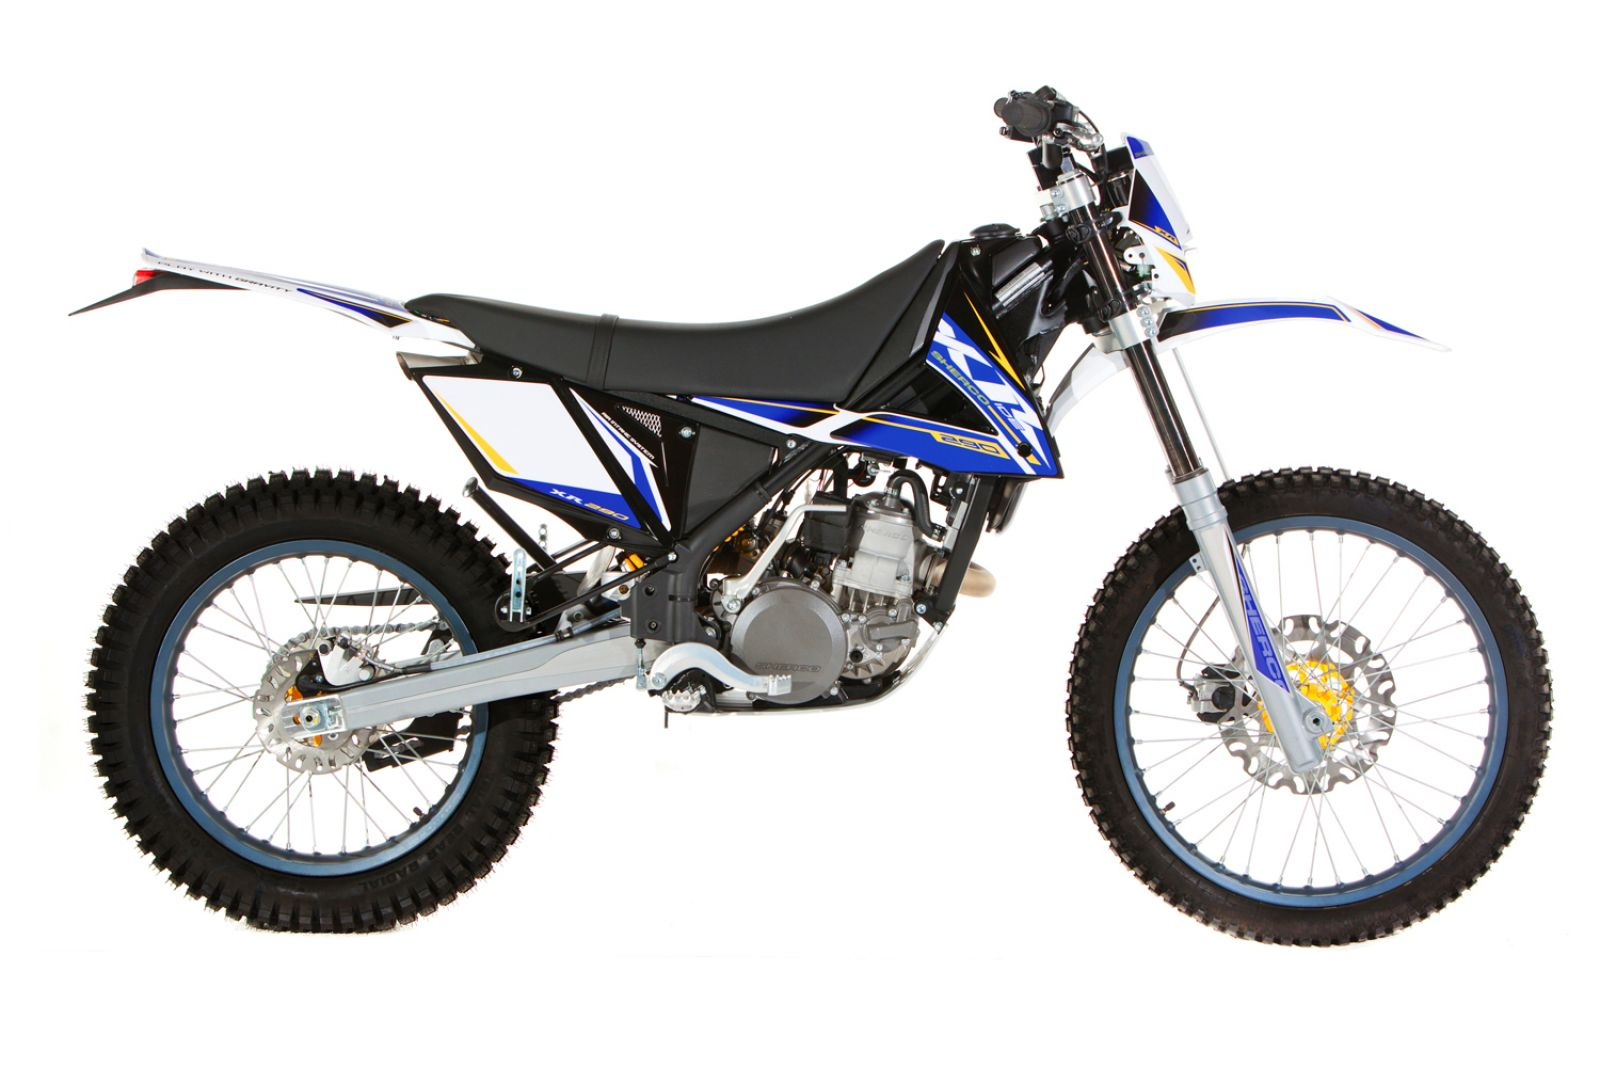 Sherco 125cc Enduro Shark Replica 2007 images #124663